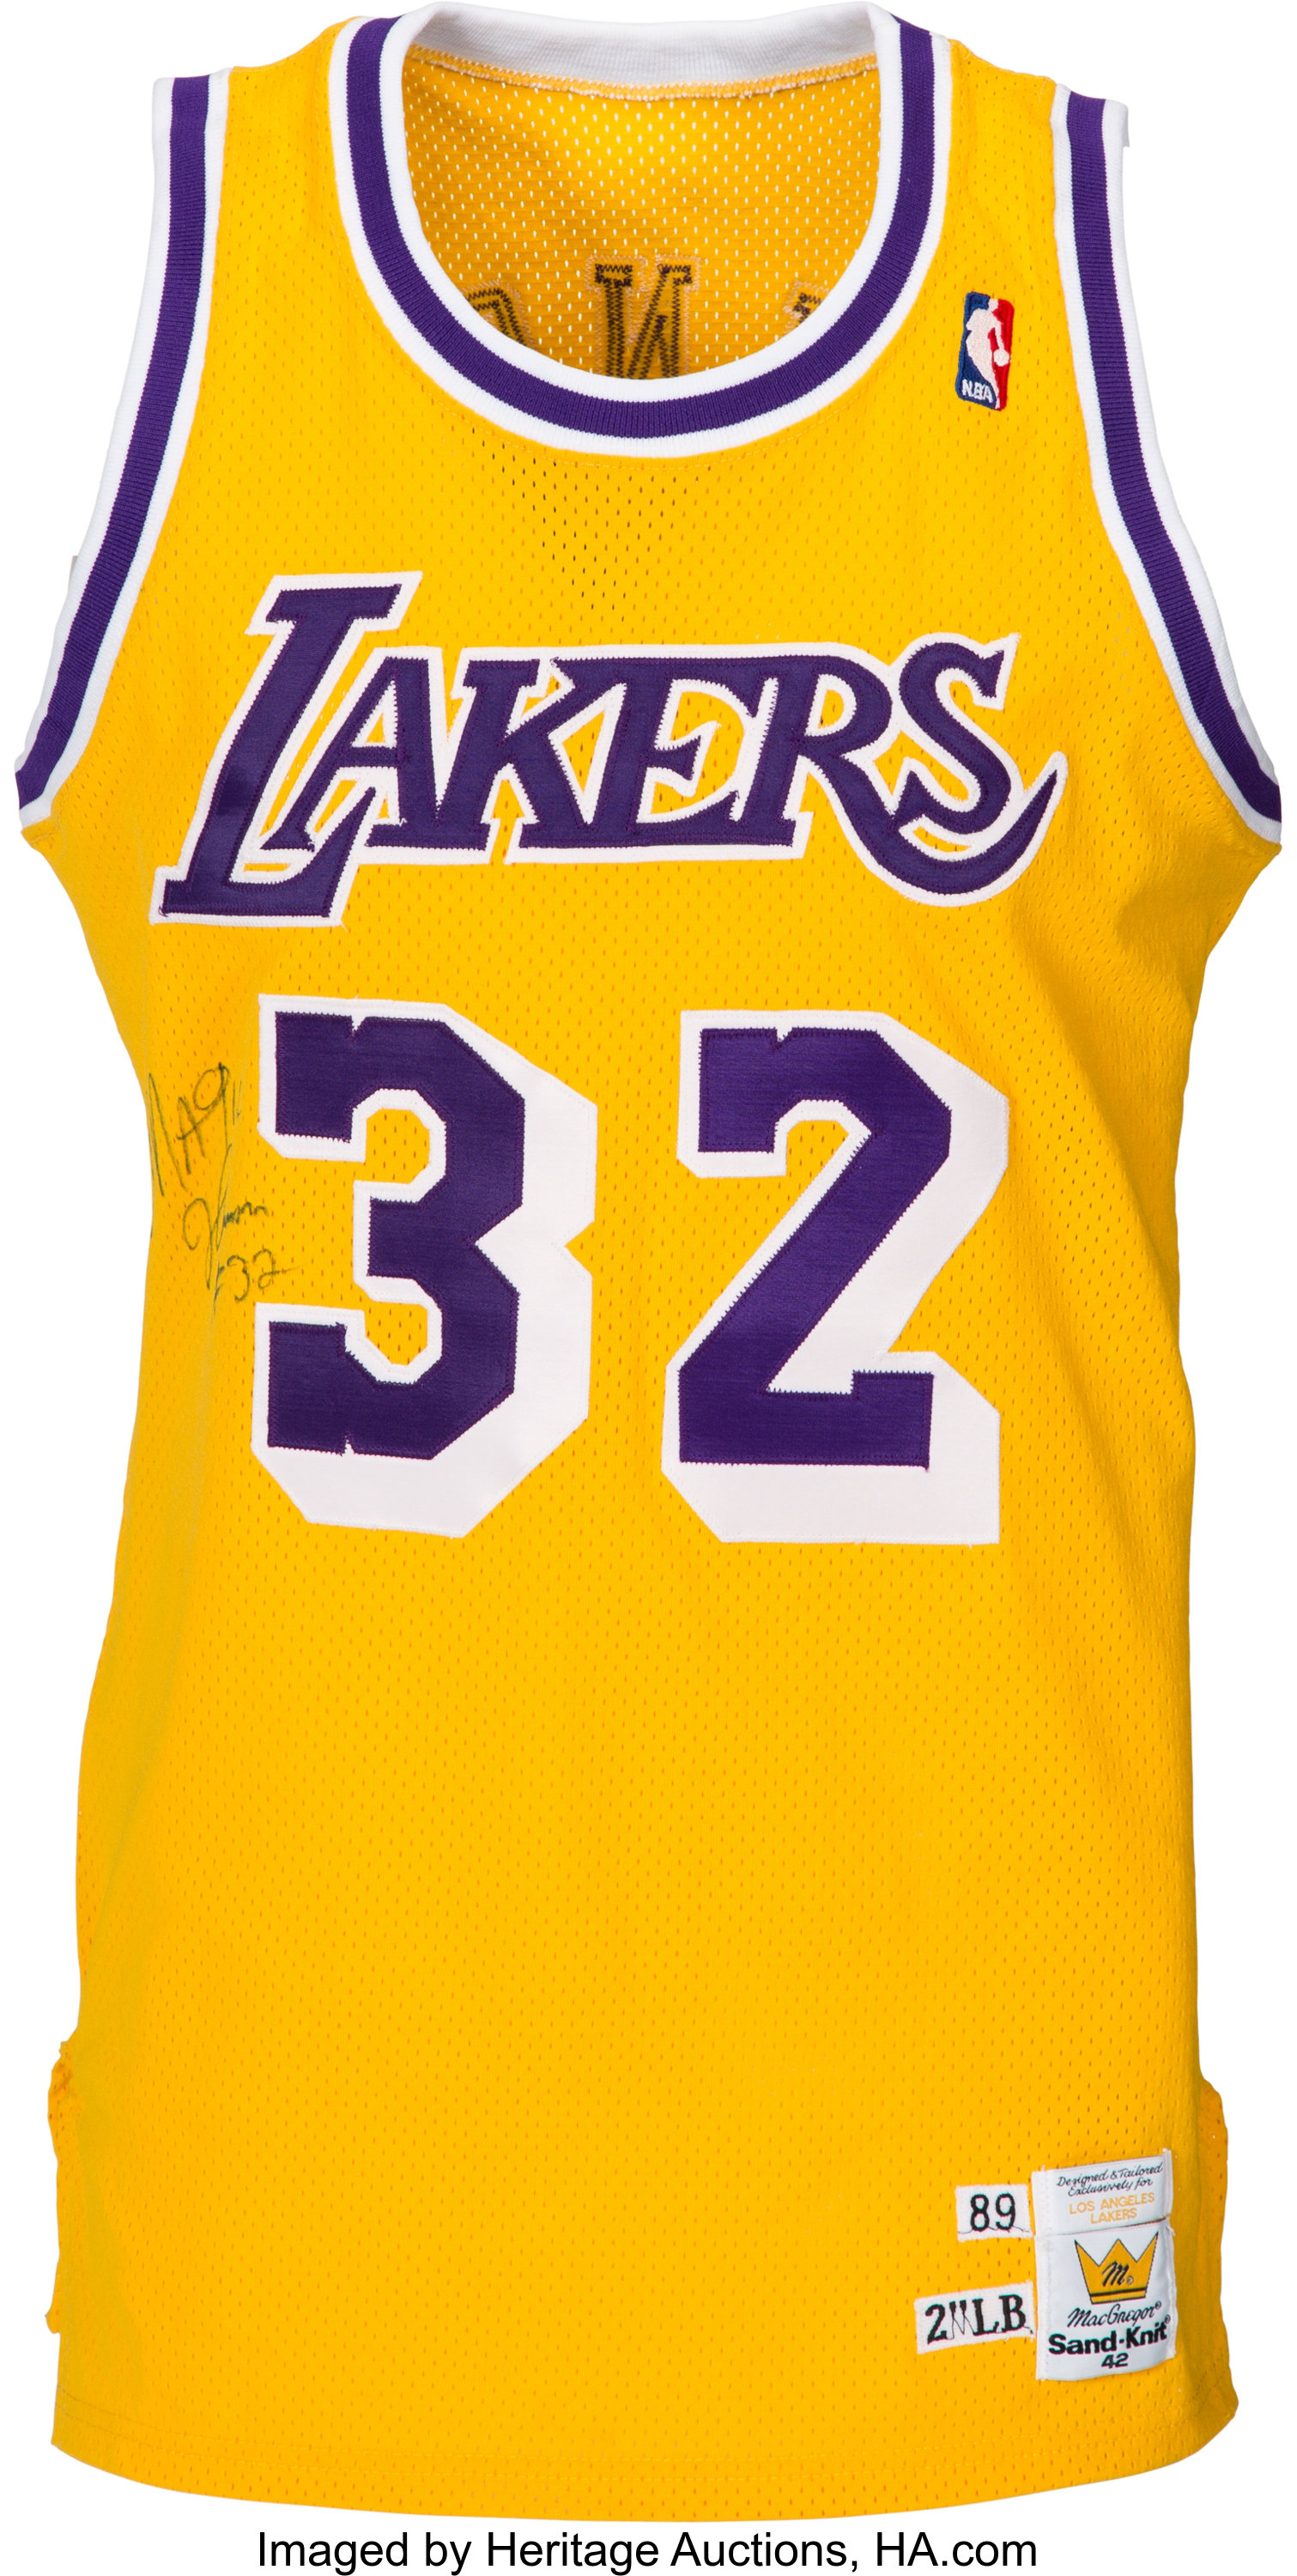 lakers jersey number 32